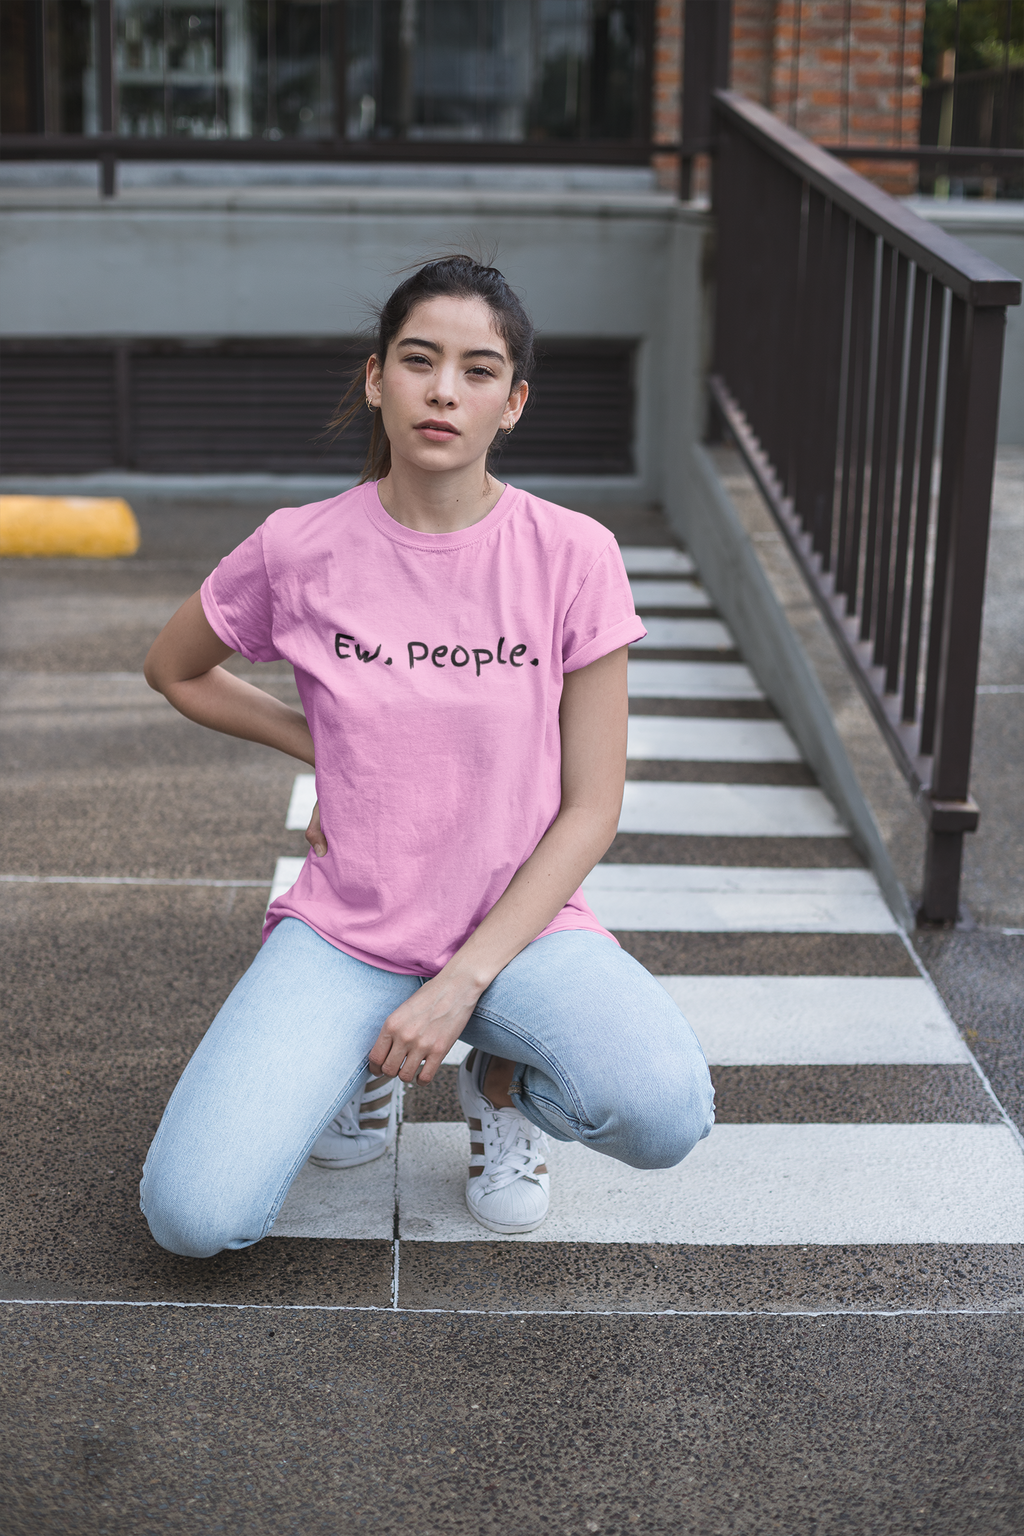 Ew People Short-Sleeve Unisex T-Shirt